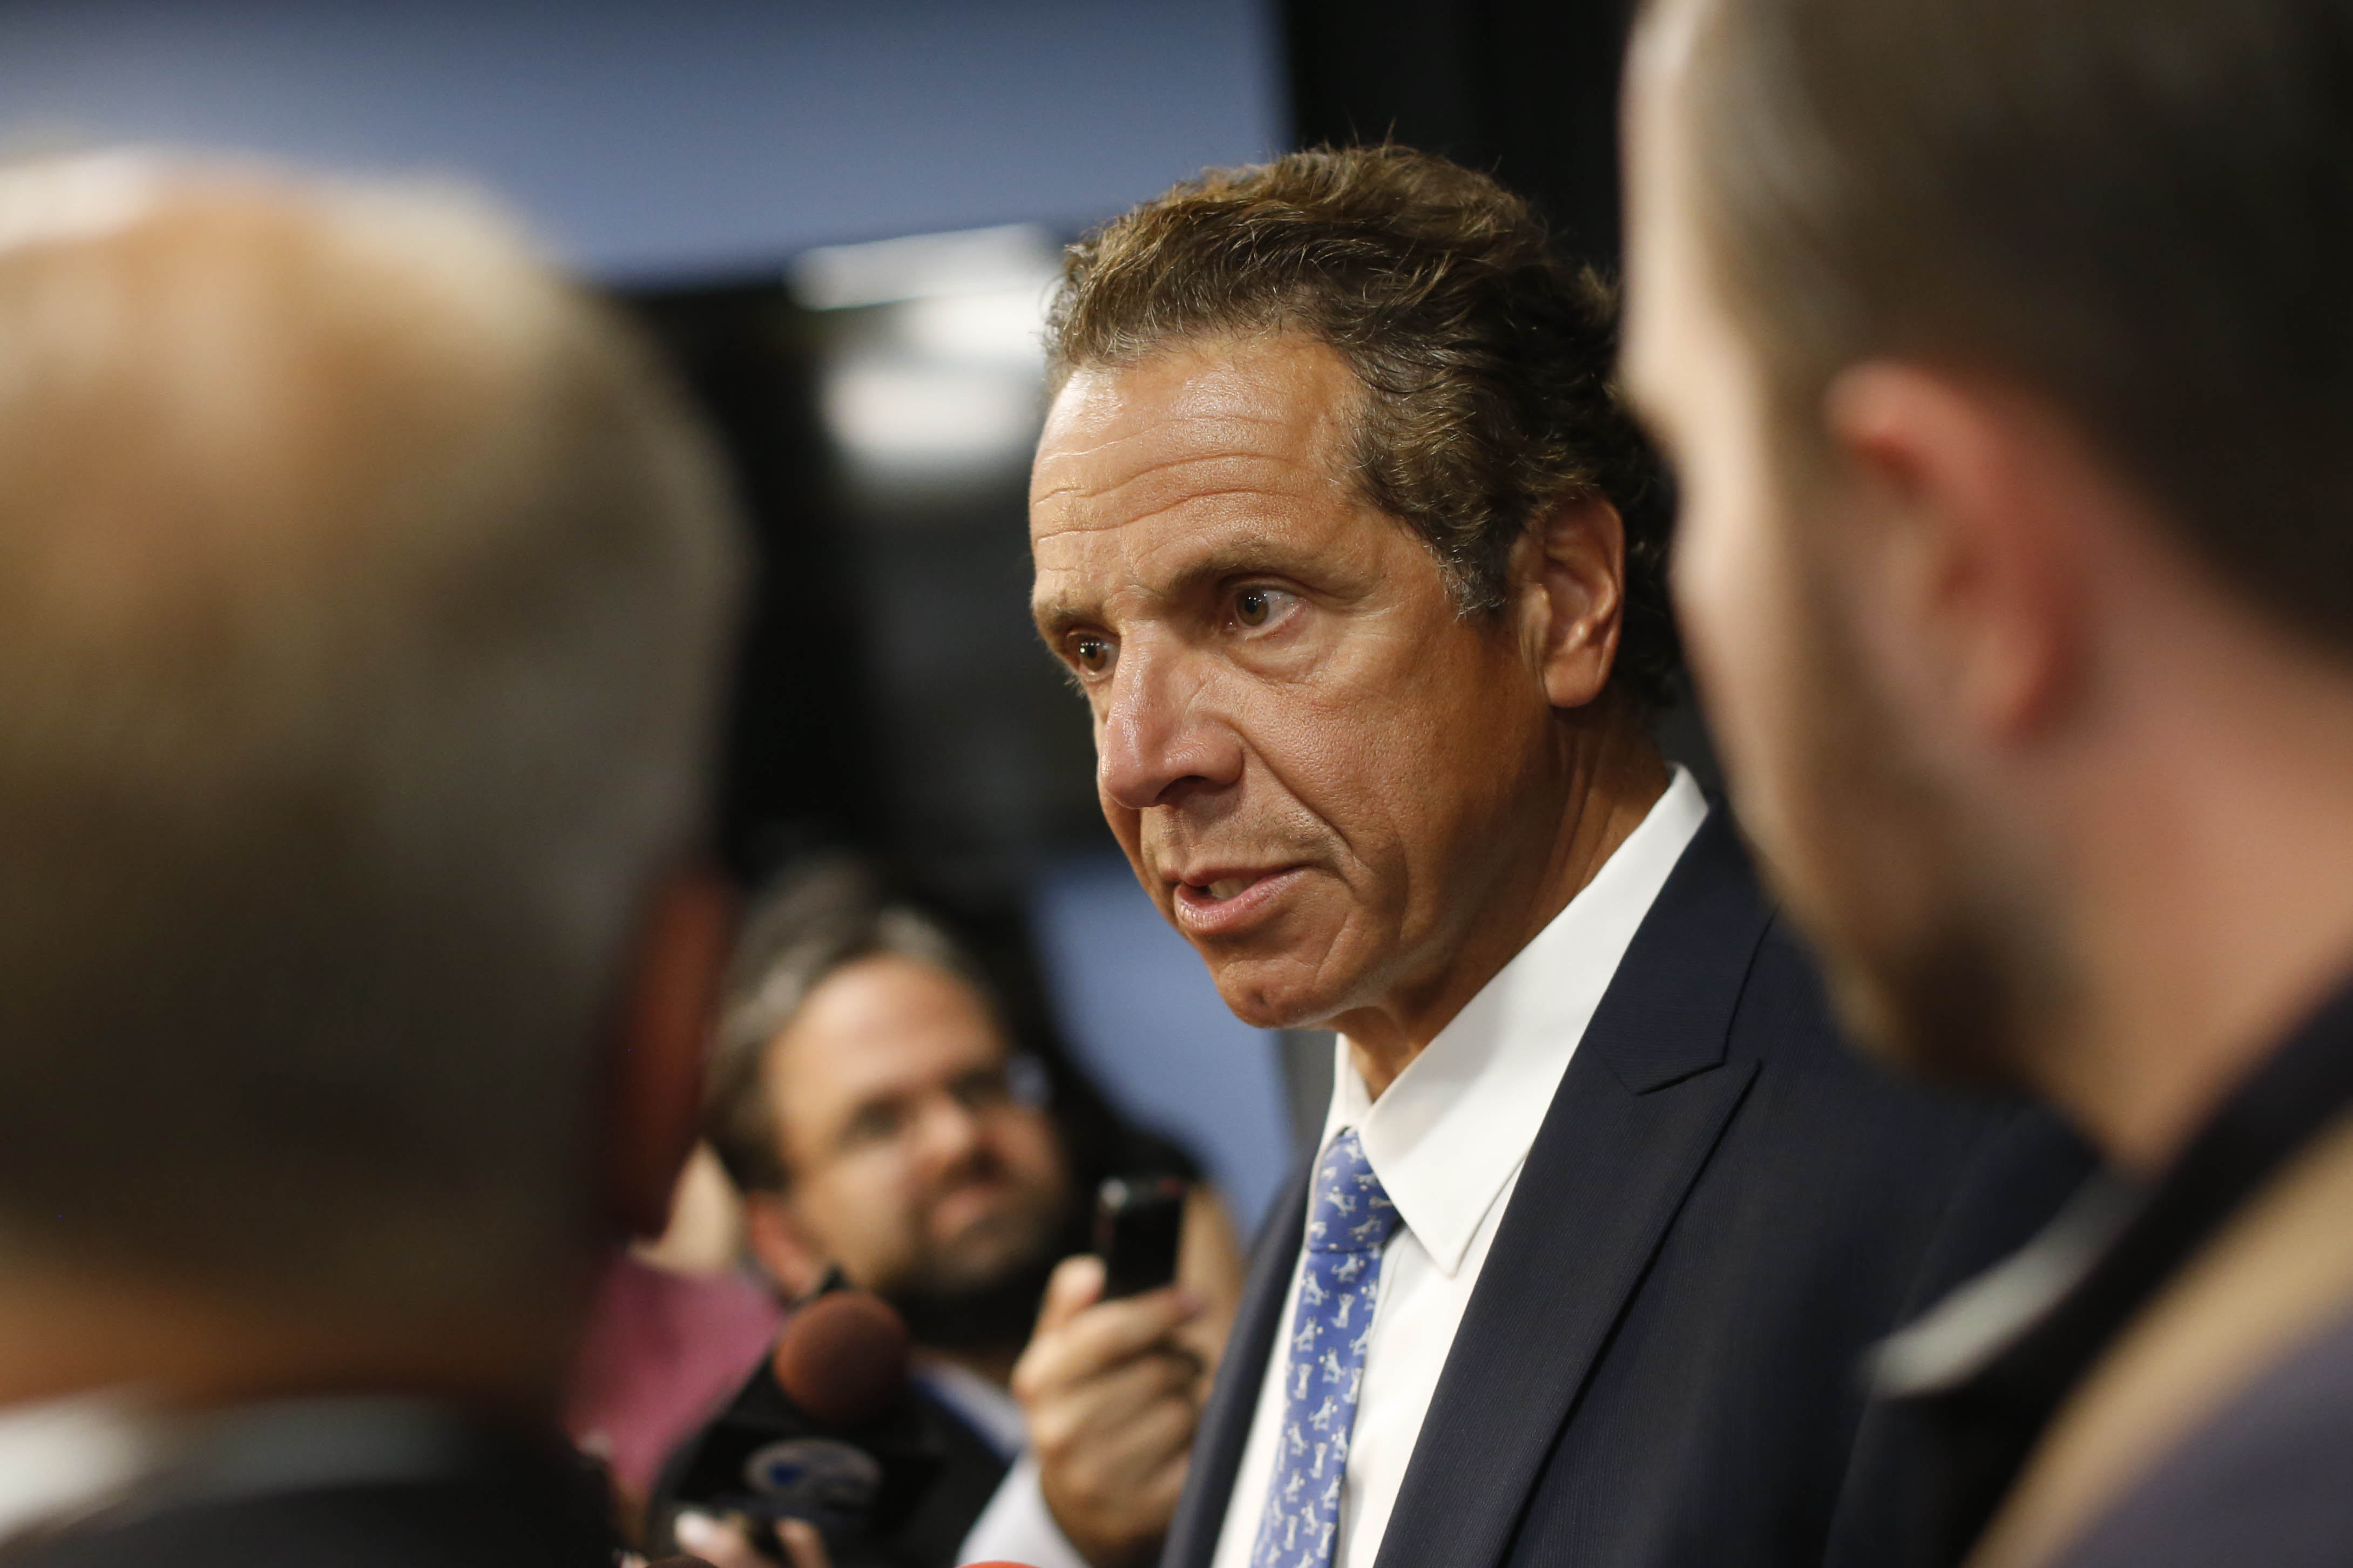 Gov. Andrew Cuomo says he will 'set aside' money he received until the conclusion of the legal case. (Derek Gee/Buffalo News)